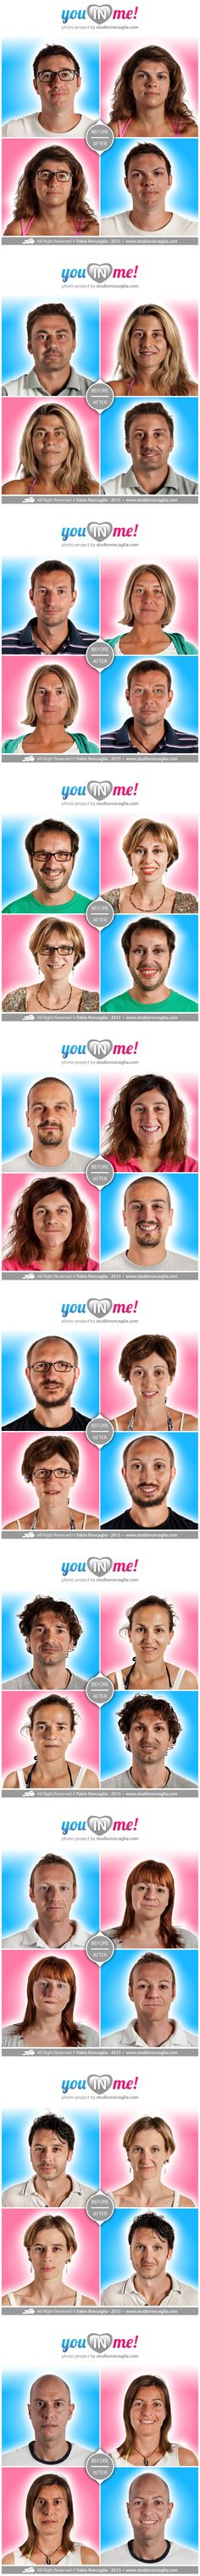 "The photographic project ""You in Me!"" is born to be ironical about one of the most typical and frequent feature of loving couples: they lose themselves in one another.  60 people (30 loving couples) accepted to participate in this project/experiment in order to see and recognize their faces in a totally new vision, which is at the same time madly familiar.  Enjoy it and have a good time!  Project author Fabio Roncaglia All Right Reserved © Fabio Roncaglia - www.studioroncaglia.com"